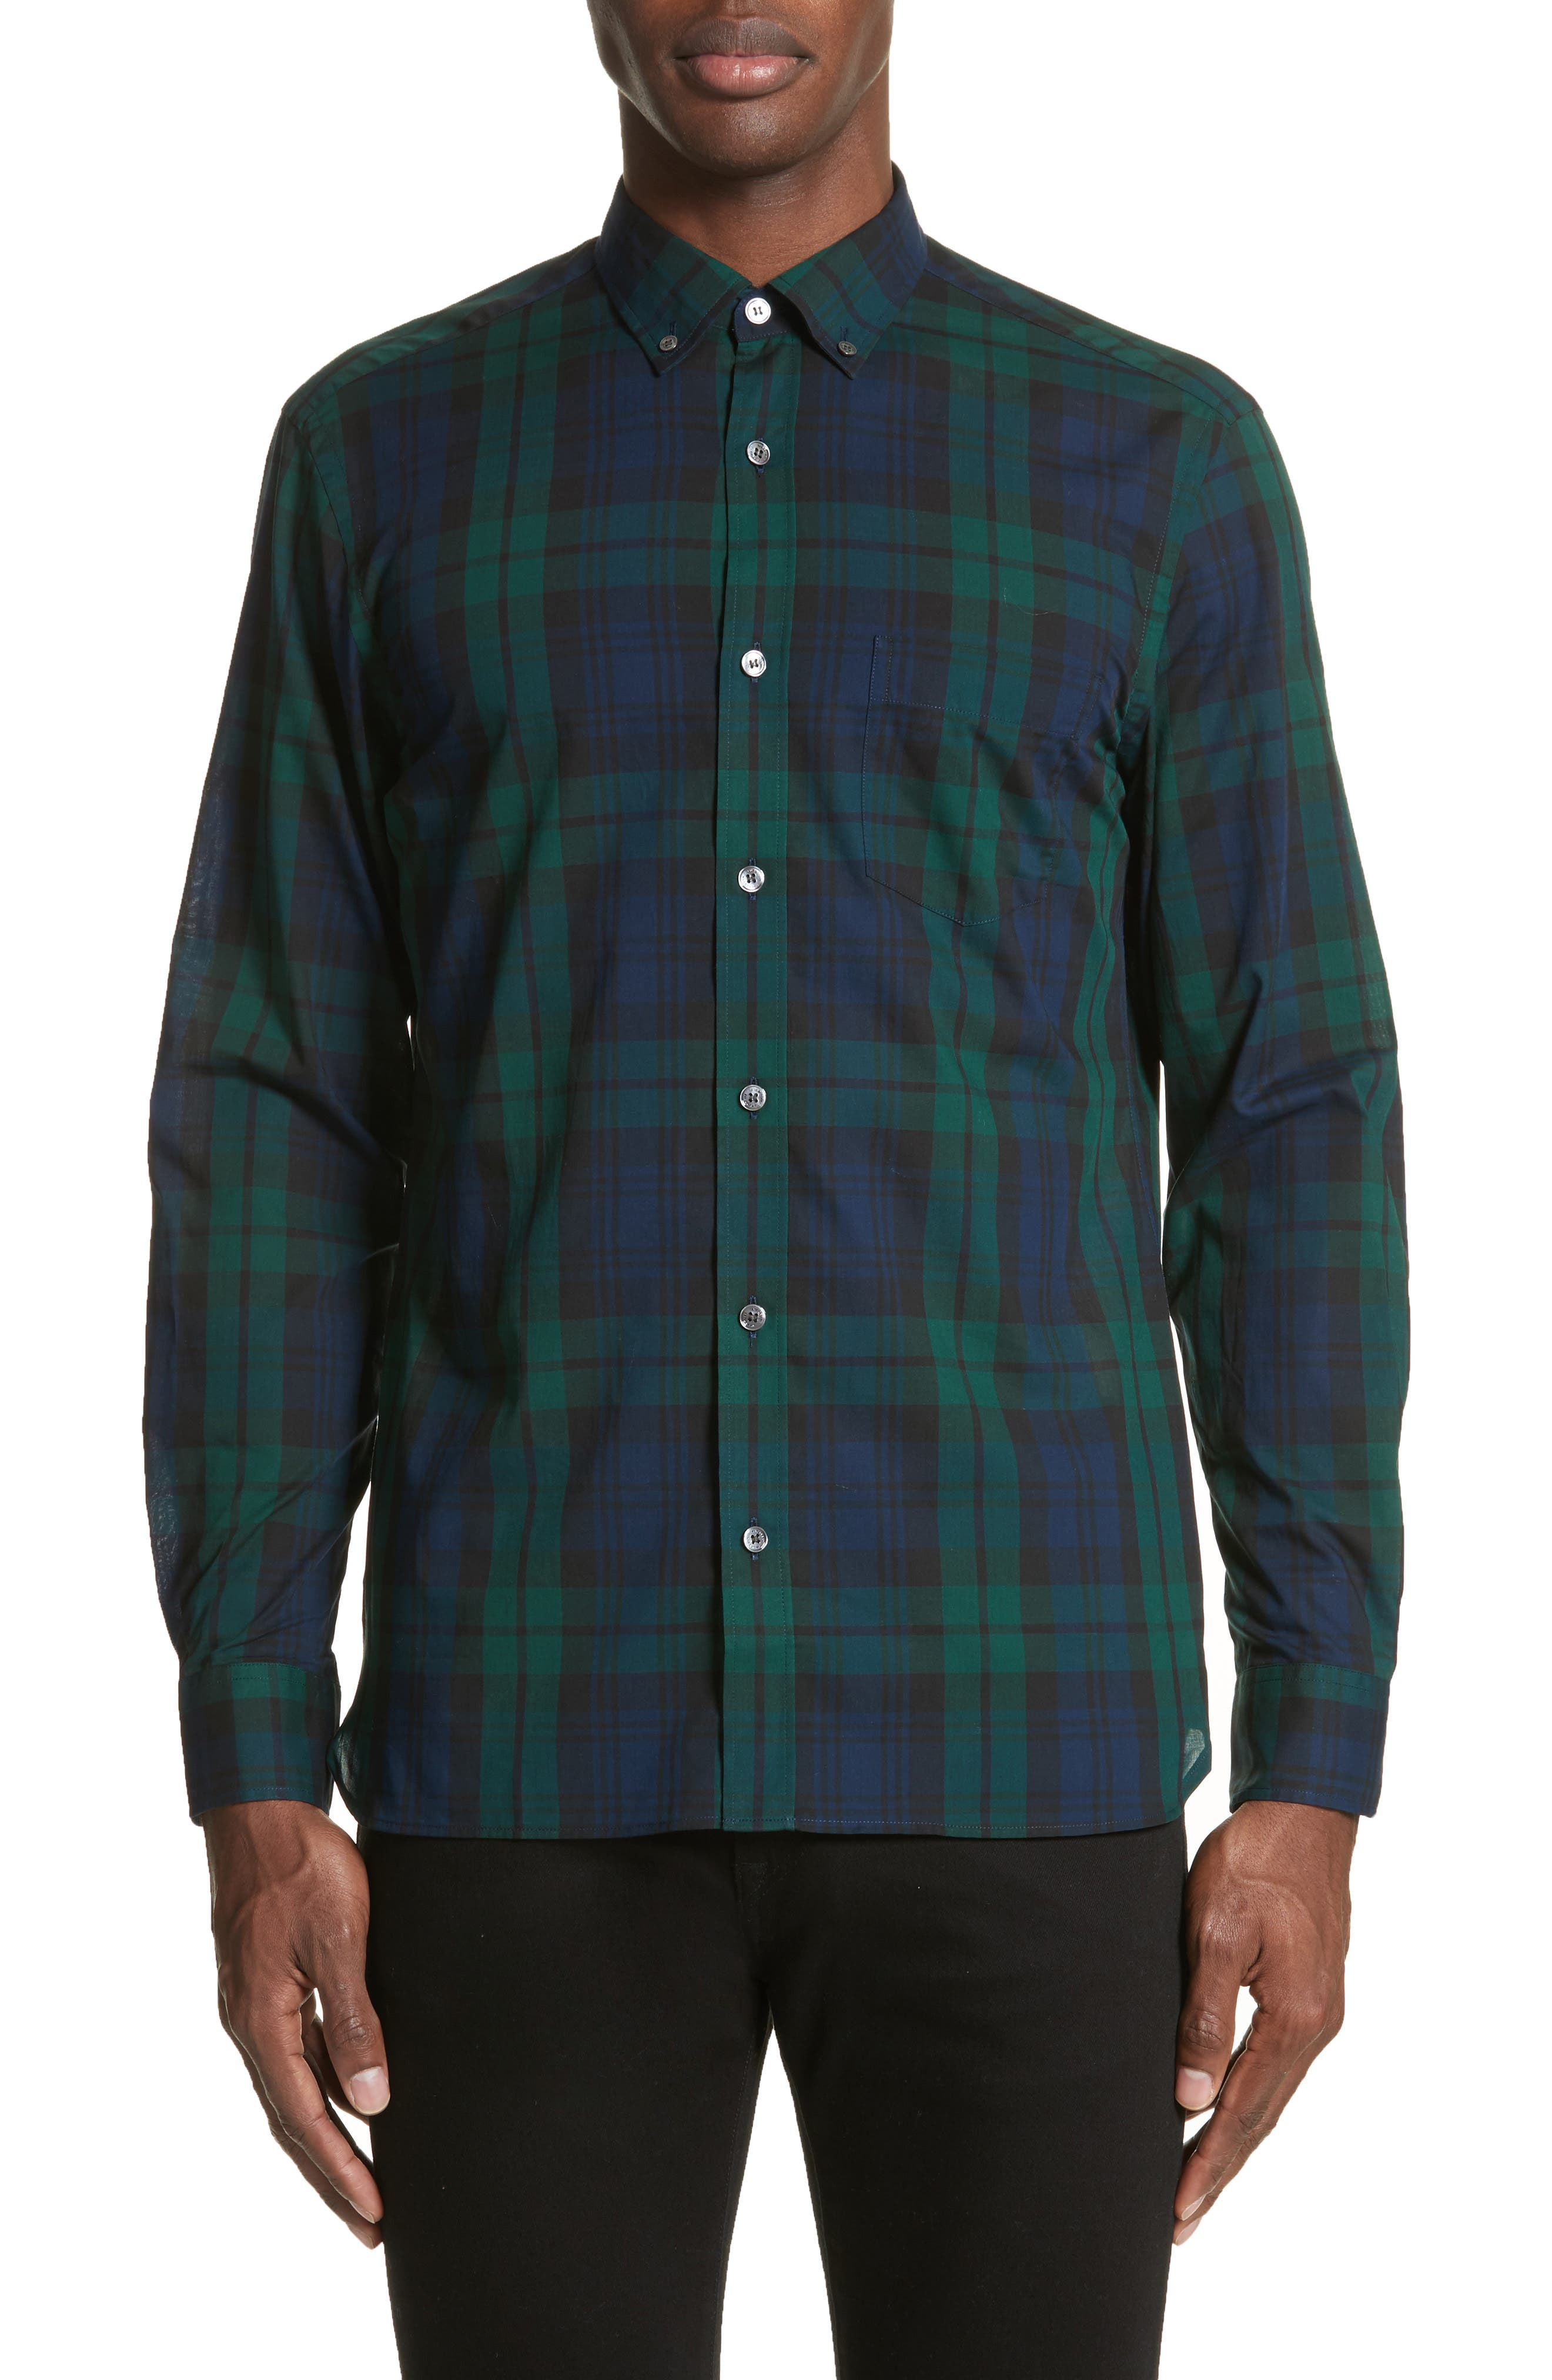 Salwick Tartan Plaid Sport Shirt,                             Main thumbnail 1, color,                             Navy